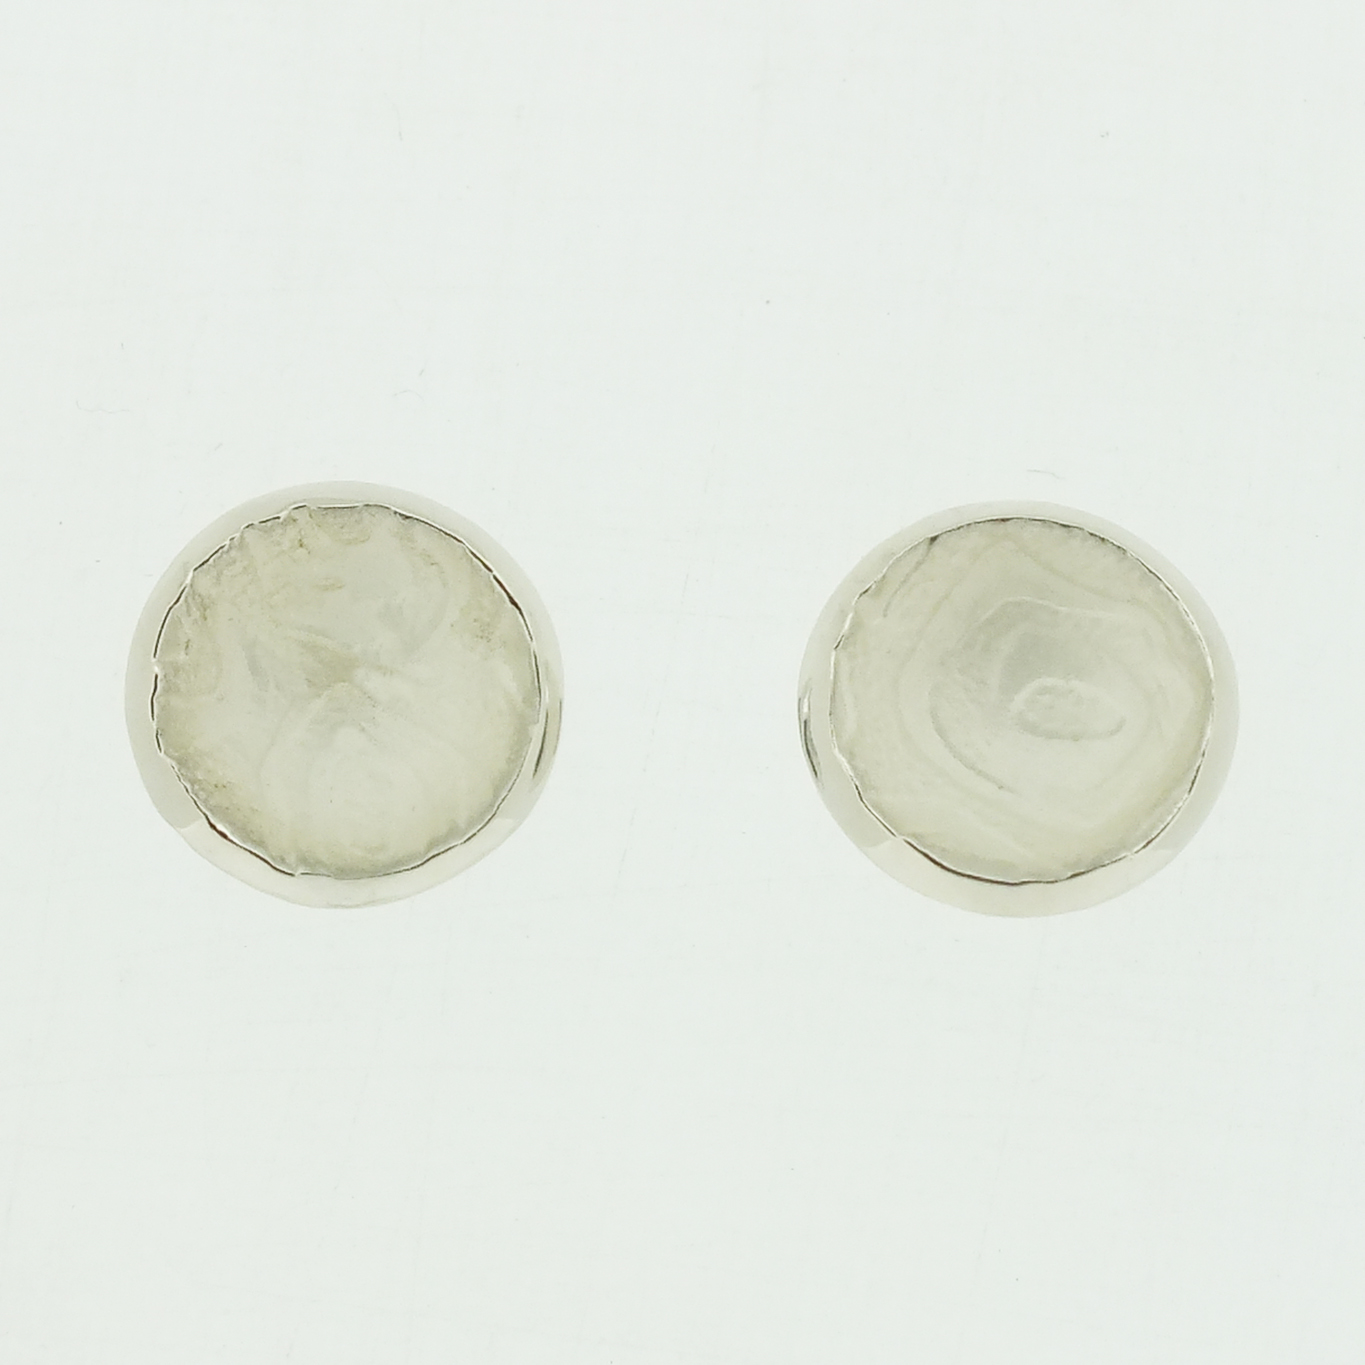 Concave cup textured silver stud earrings